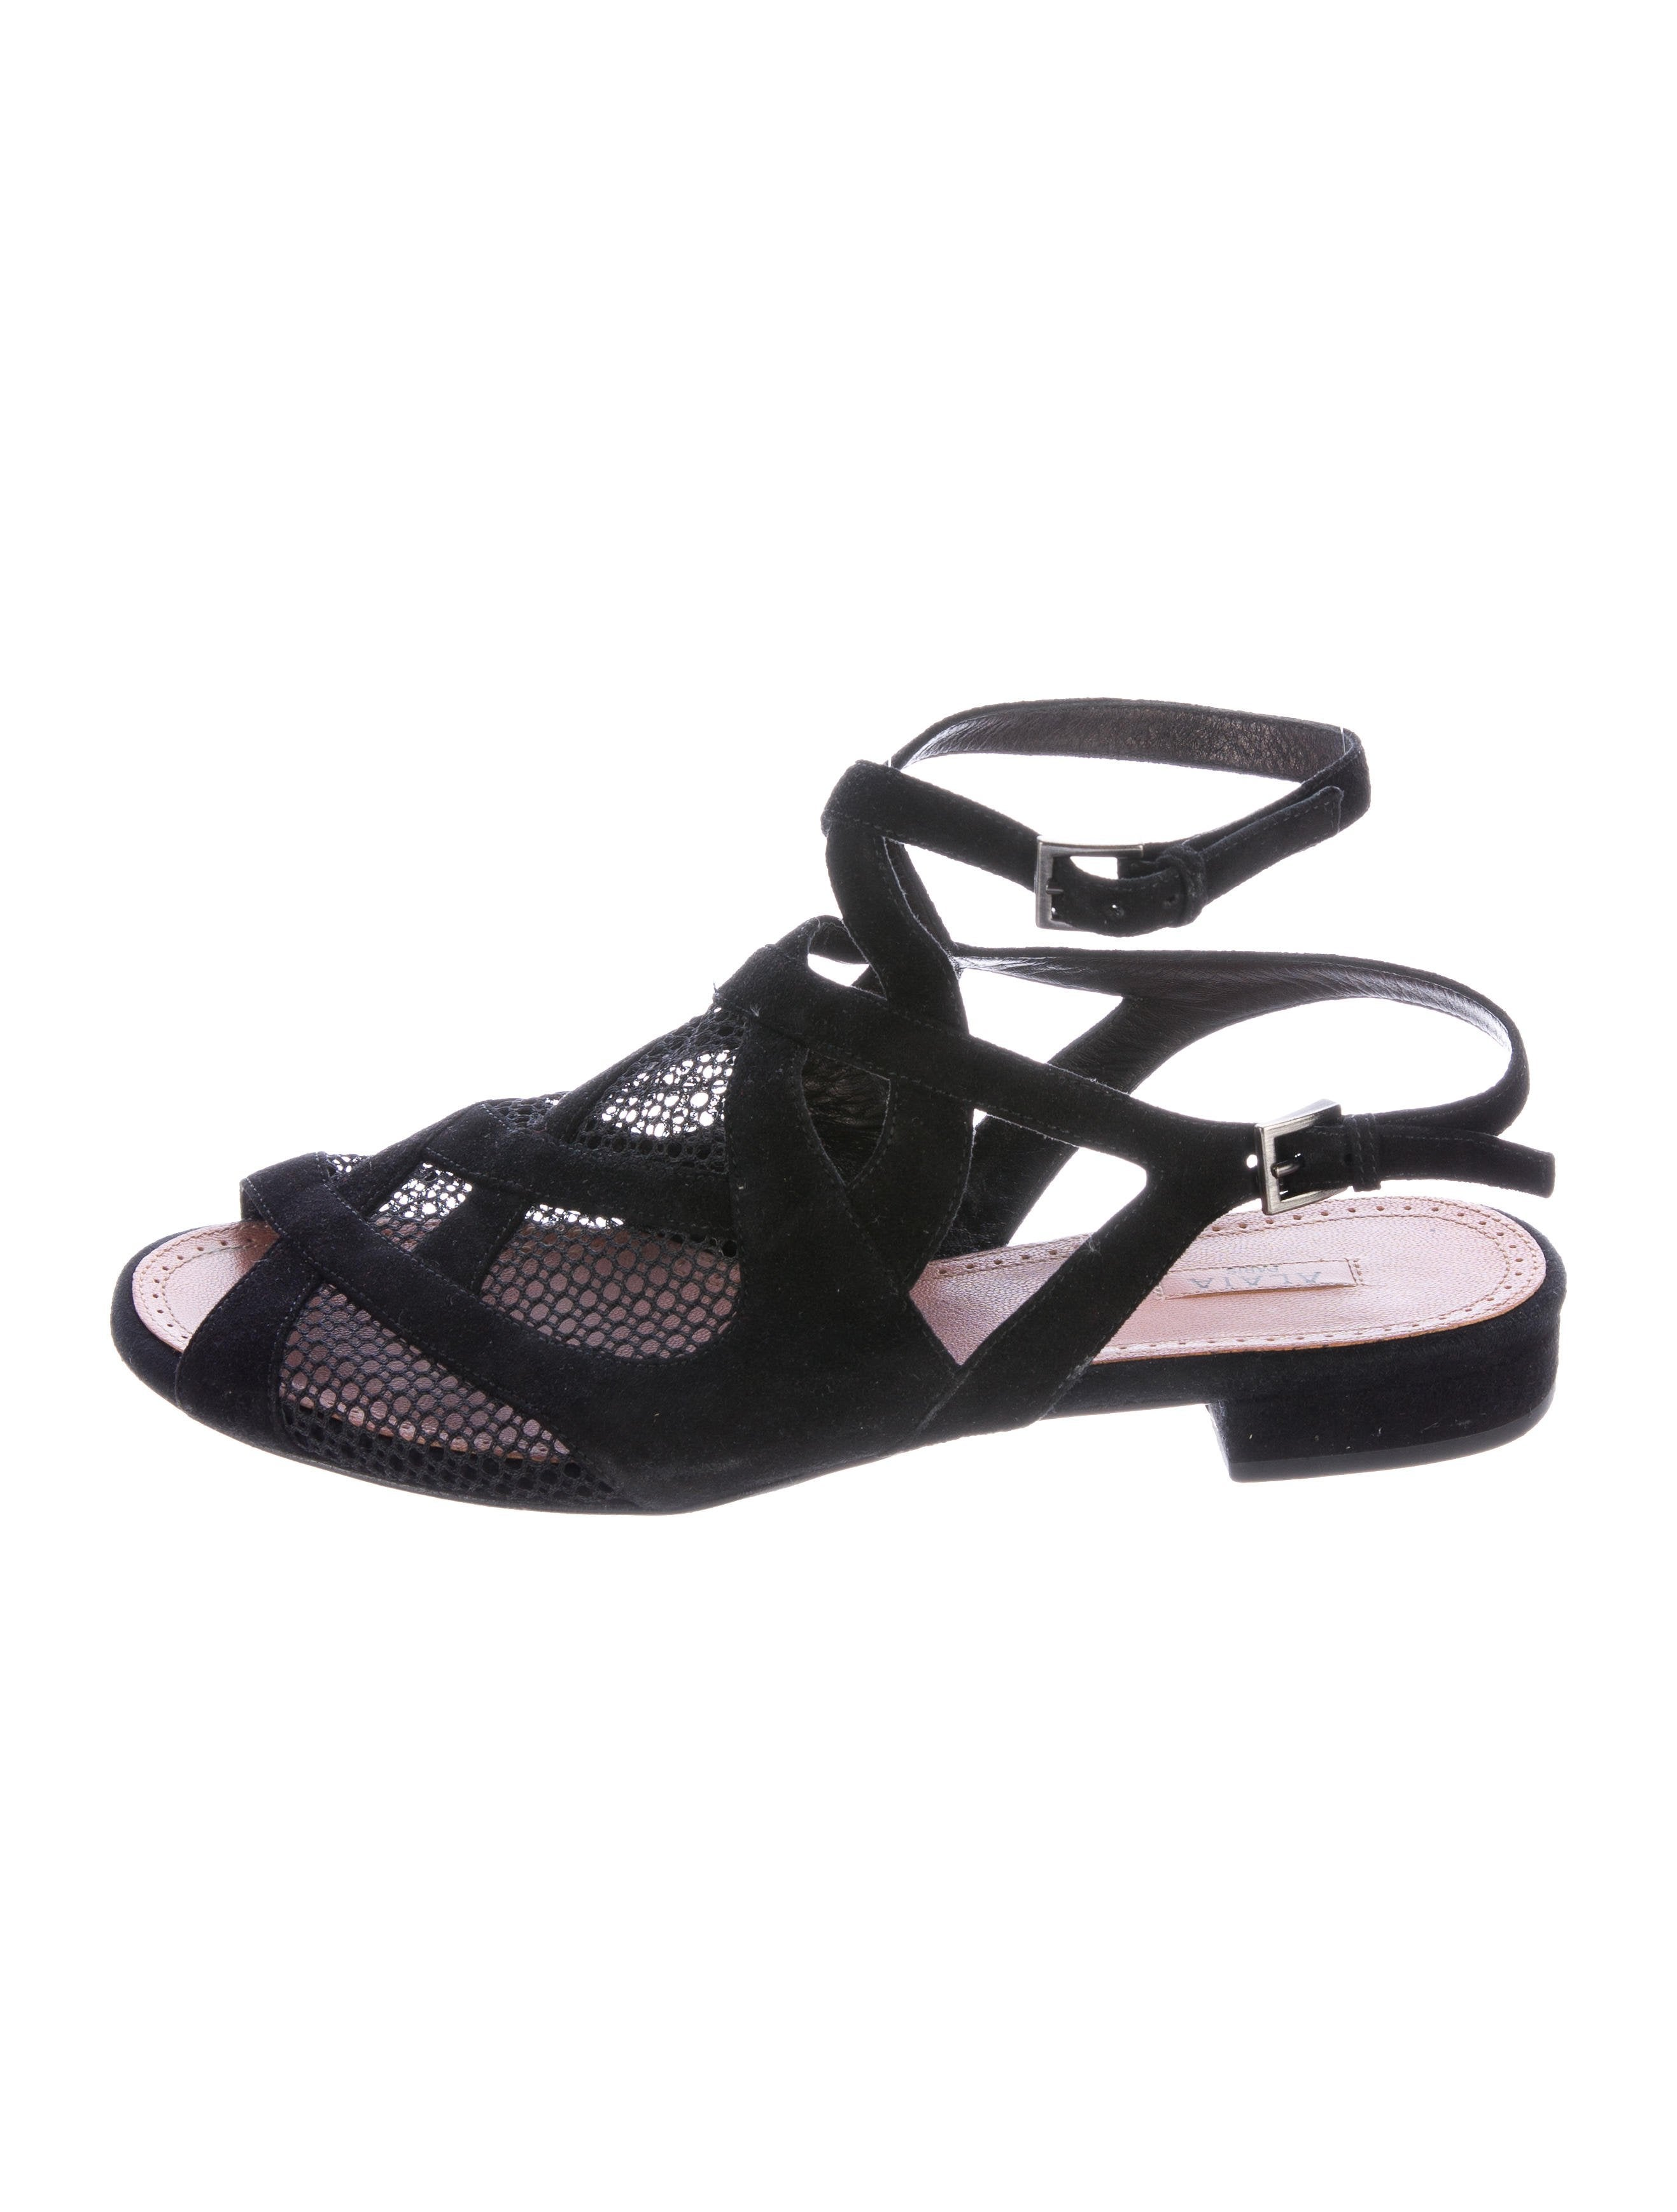 Alaïa Mesh Multistrap Sandals